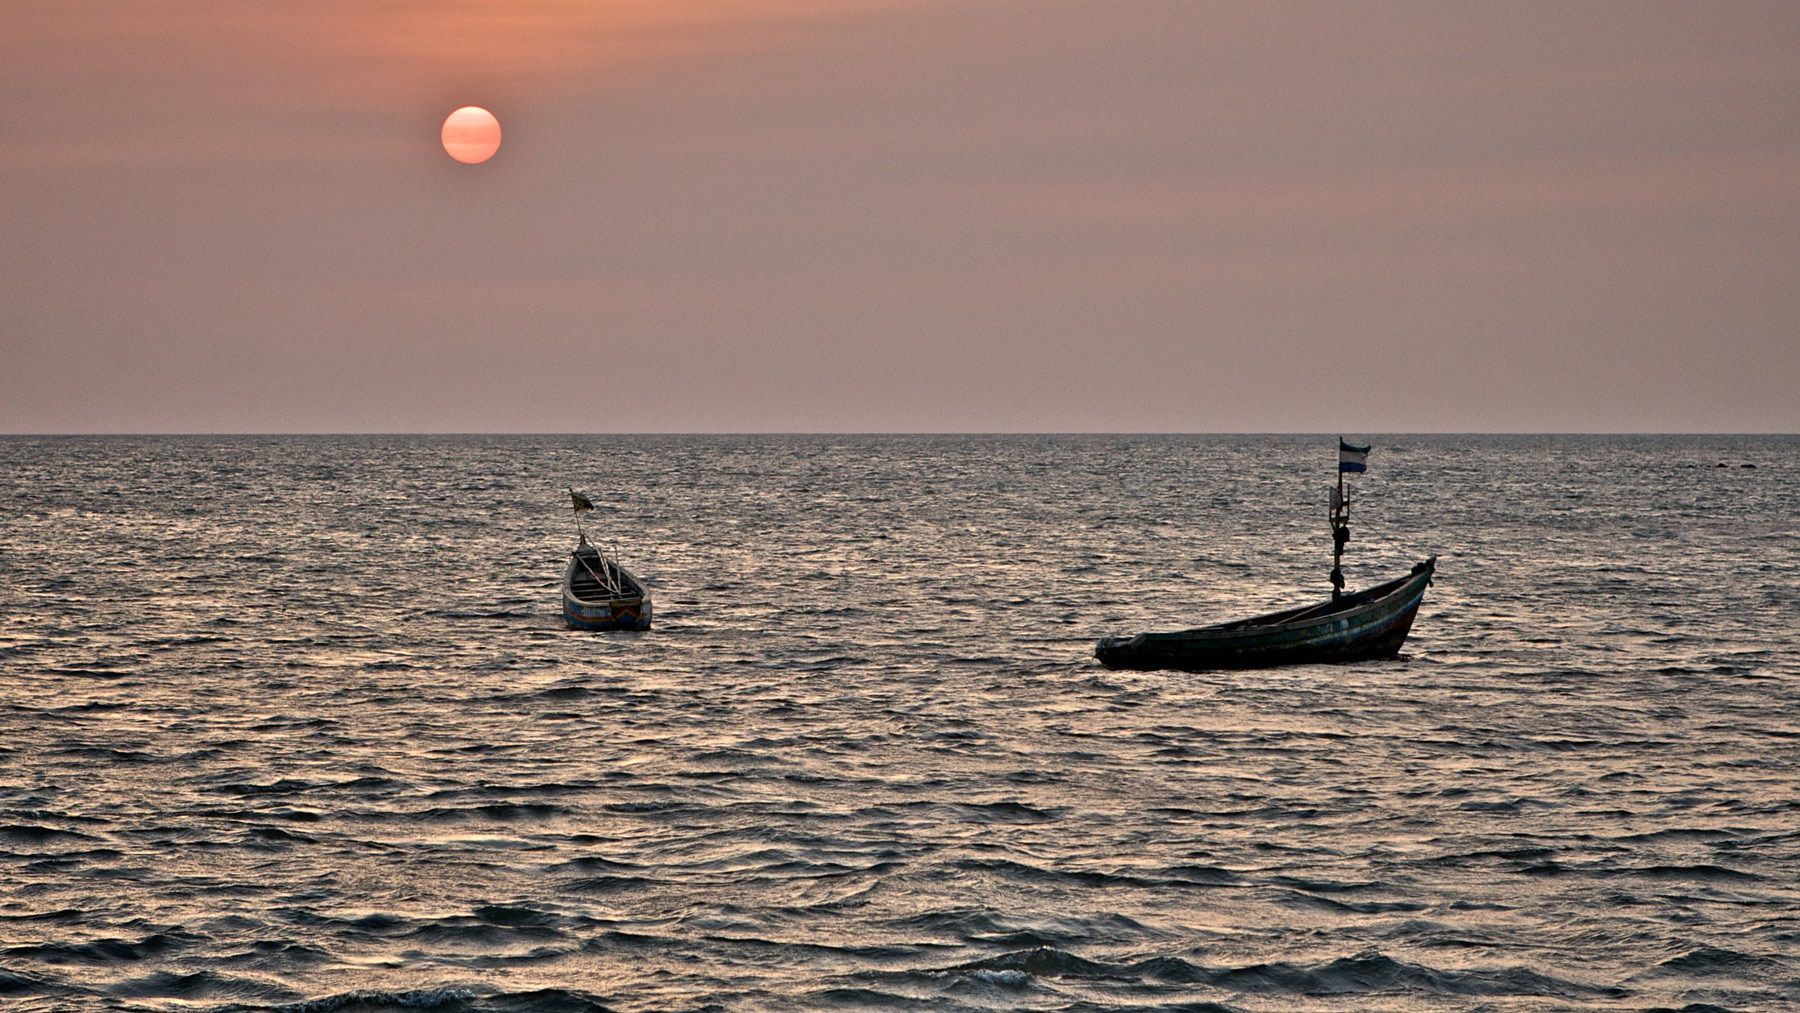 1sunset_freetown_harbor_boats_sierra_leone.jpg